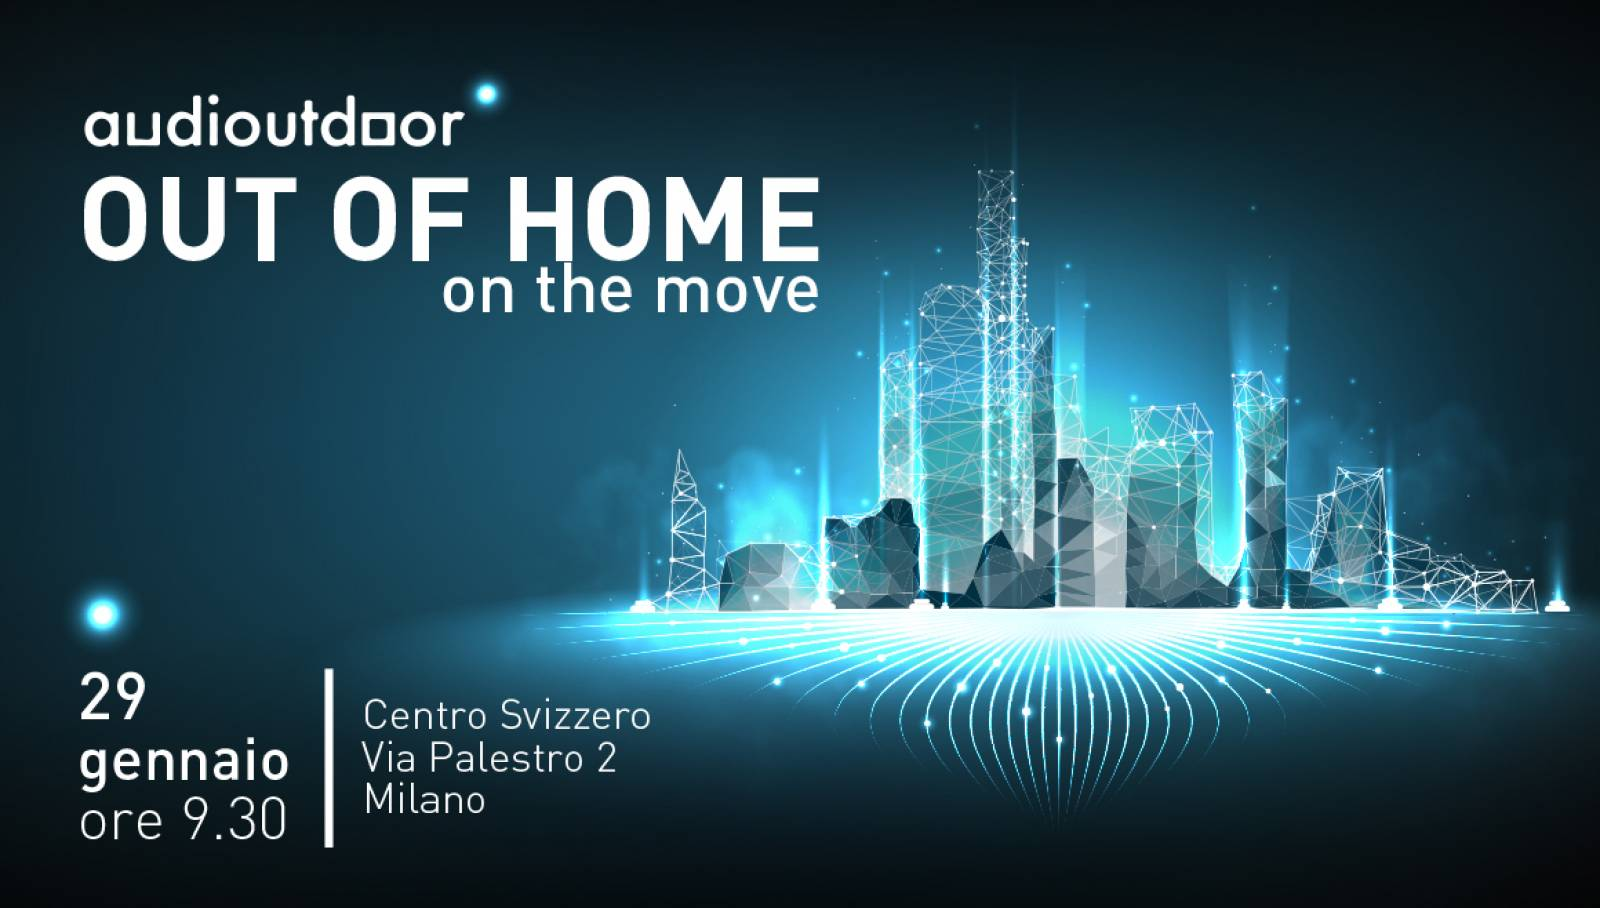 IGPDecaux Convegno AudiOutdoor Out Of Home on the move